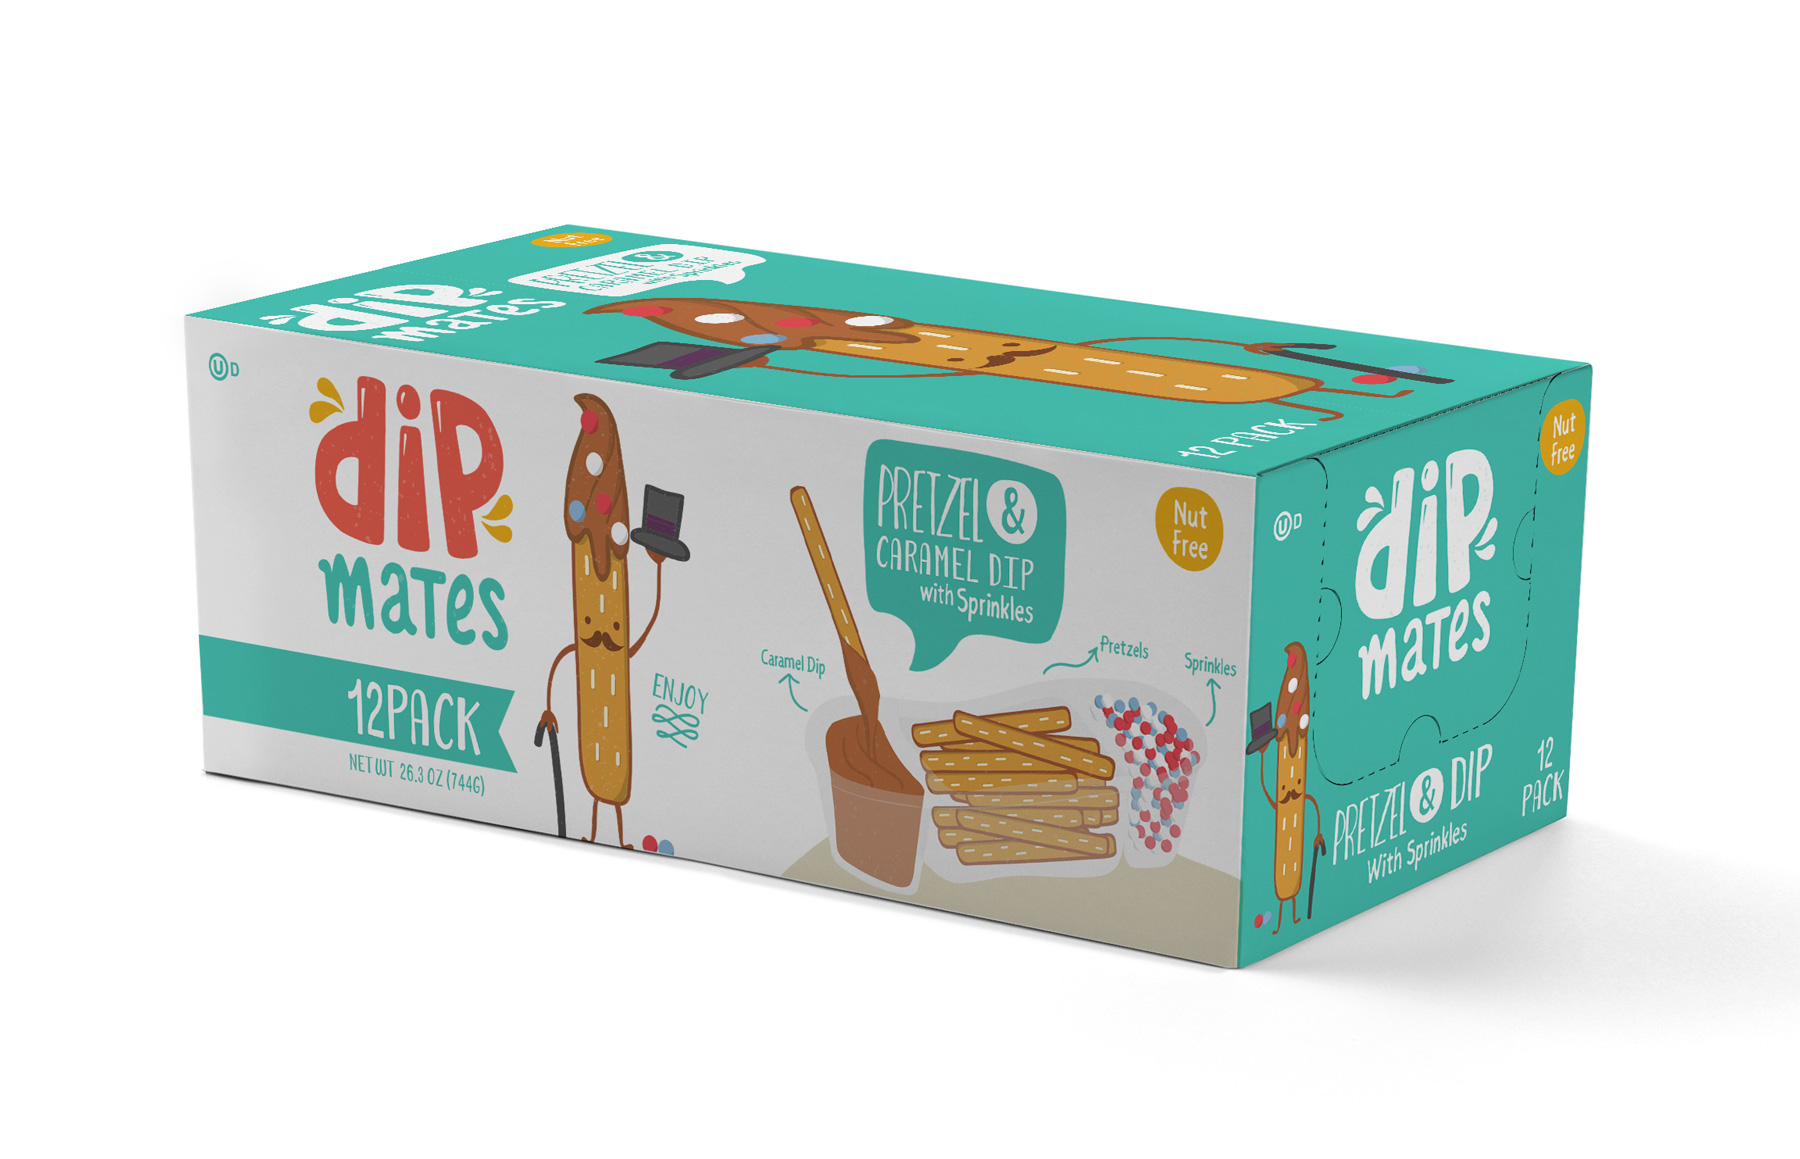 Branding and Packaging snack design for Dipmates